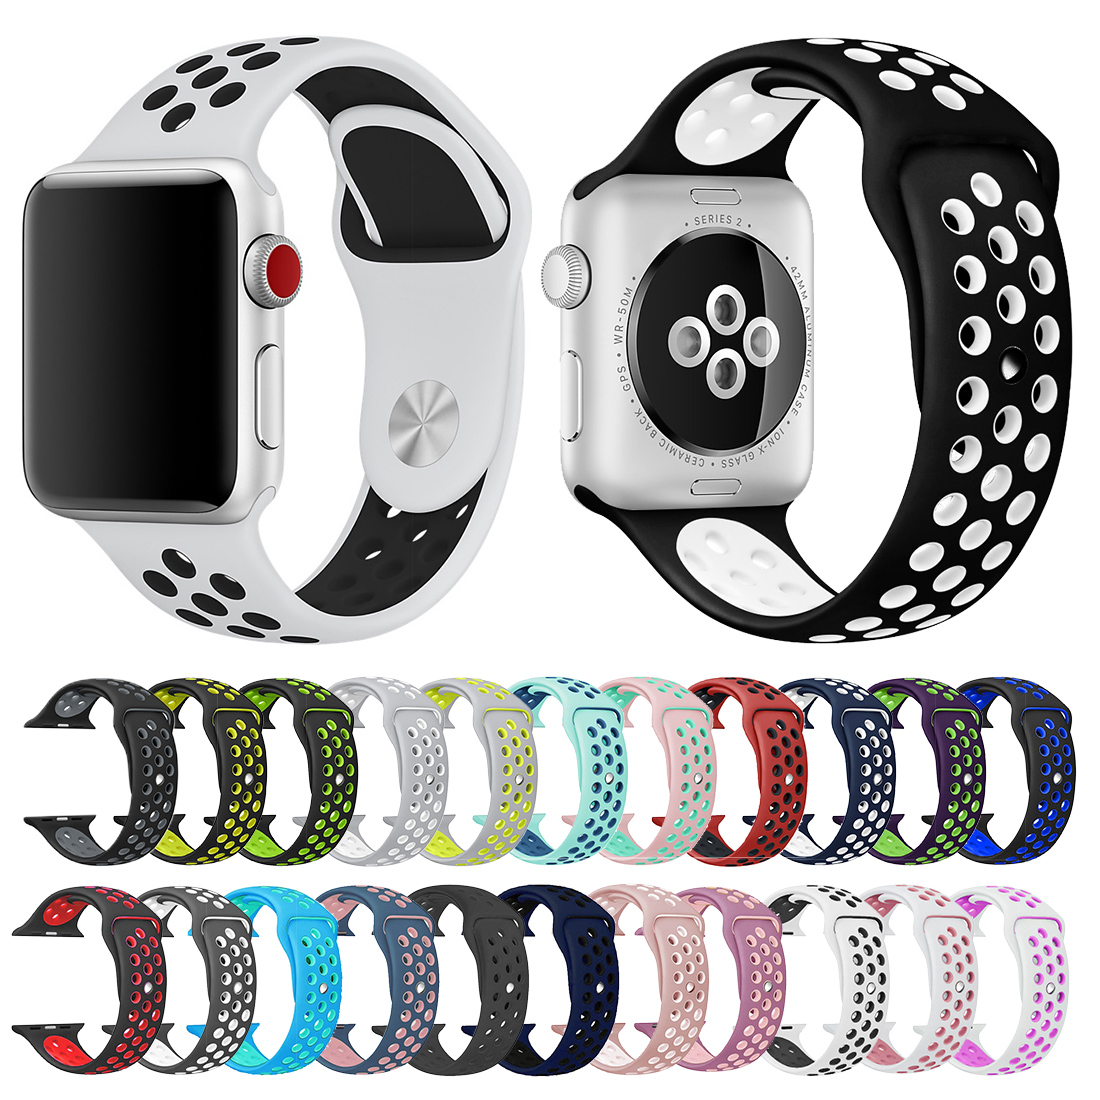 Soft Silicone Replacement Wristband for Apple Watch Series 4 1 2 3 Breathable hole iwatch band 42mm iwatch band 38mm strap bemorcabo cartoon diy replacement band for apple watch series 3 2 1 silicone sport wristband strap bands for iwatch 38mm 42mm